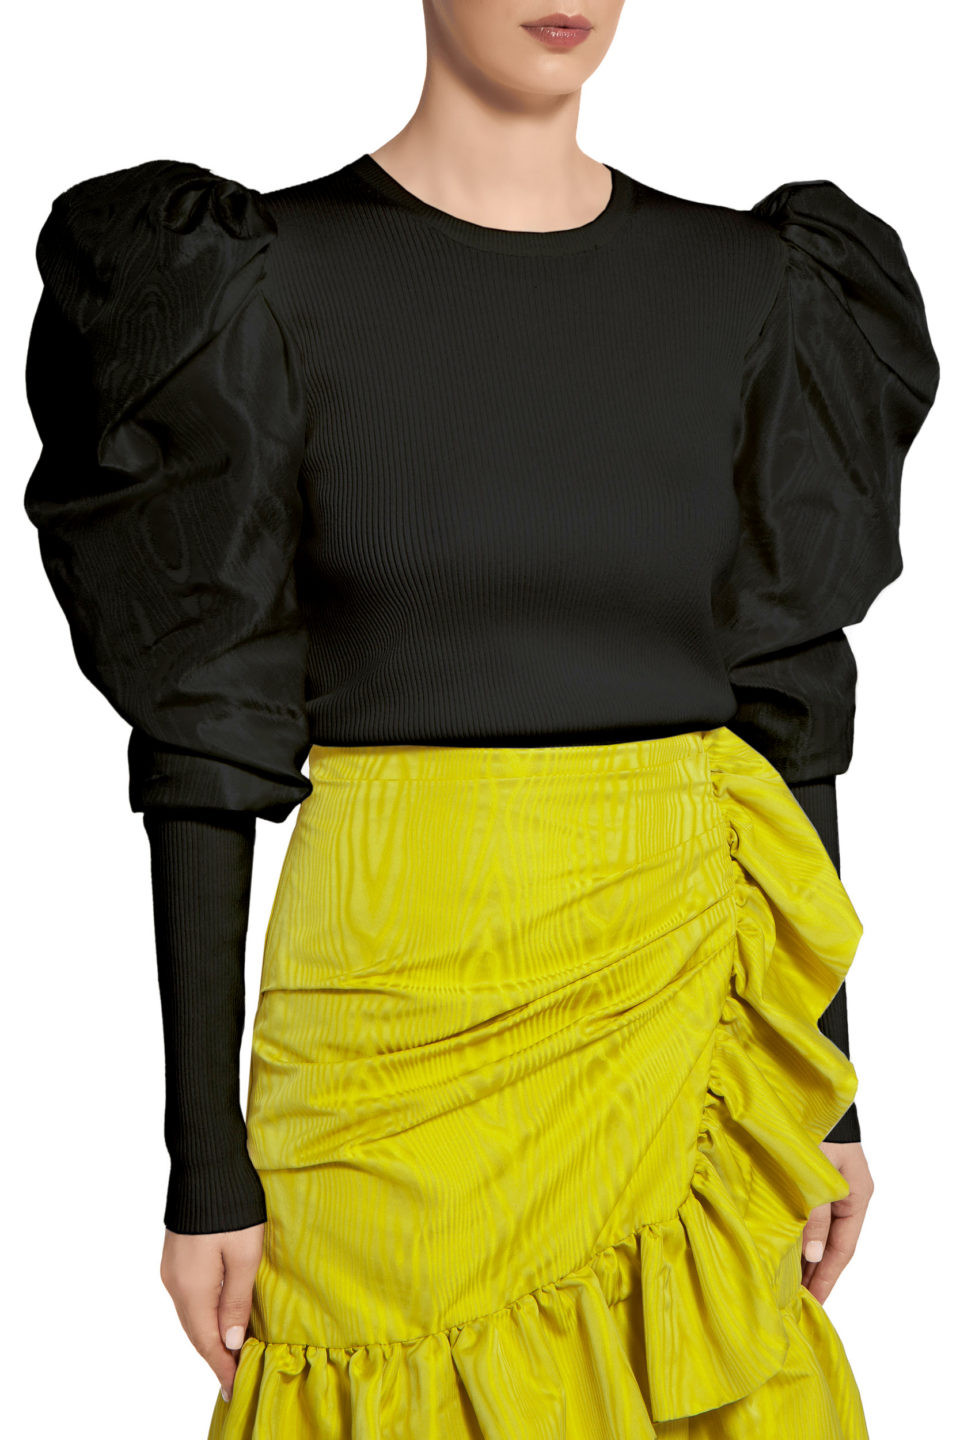 Maura PR2063 Black Ribbed-Knit Top with Taffeta Puff Sleeves